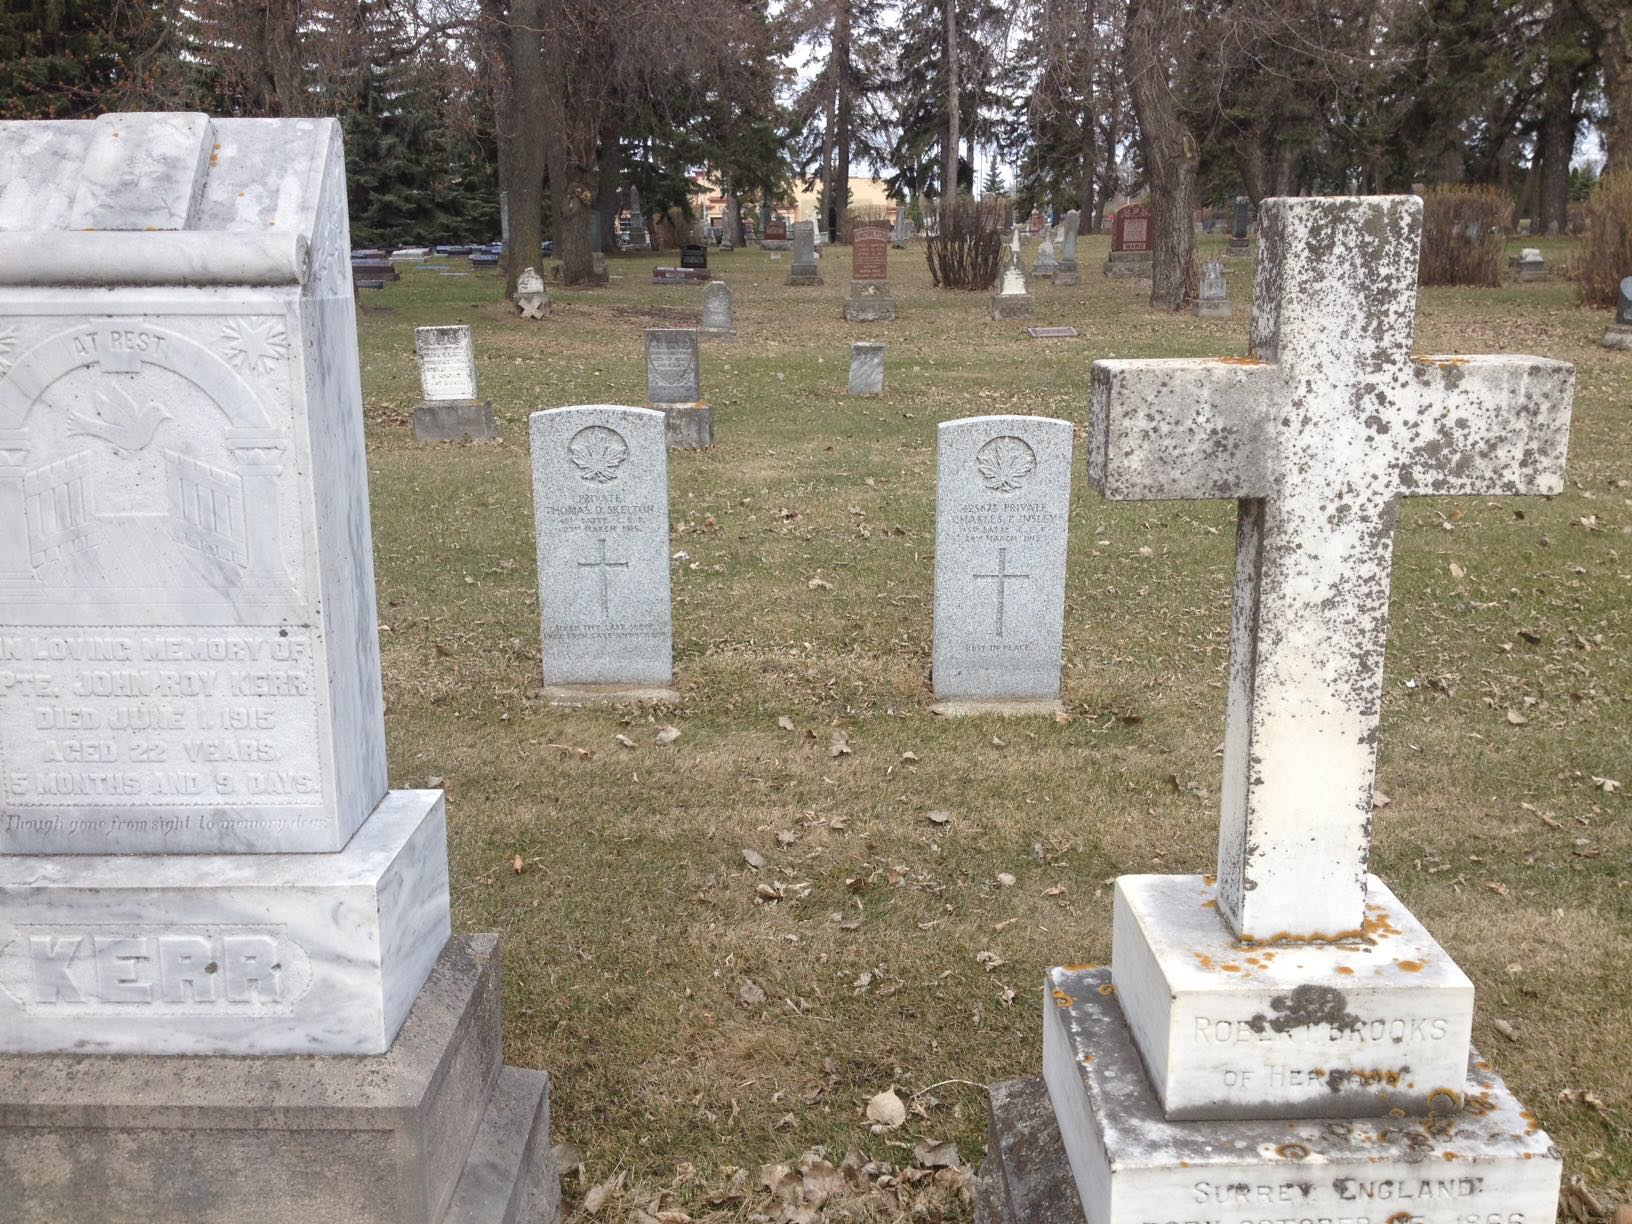 Grave marker– Private Skelton and Private Insley were buried side-by-side in the Brandon Municipal Cemetery (Brandon, Manitoba, Canada). The soldiers had a double military funeral - the first ever held in the city according to the Brandon Daily Sun (26 March 1915).  Both men were members of the 45th Battalion and had succumbed to pneumonia.